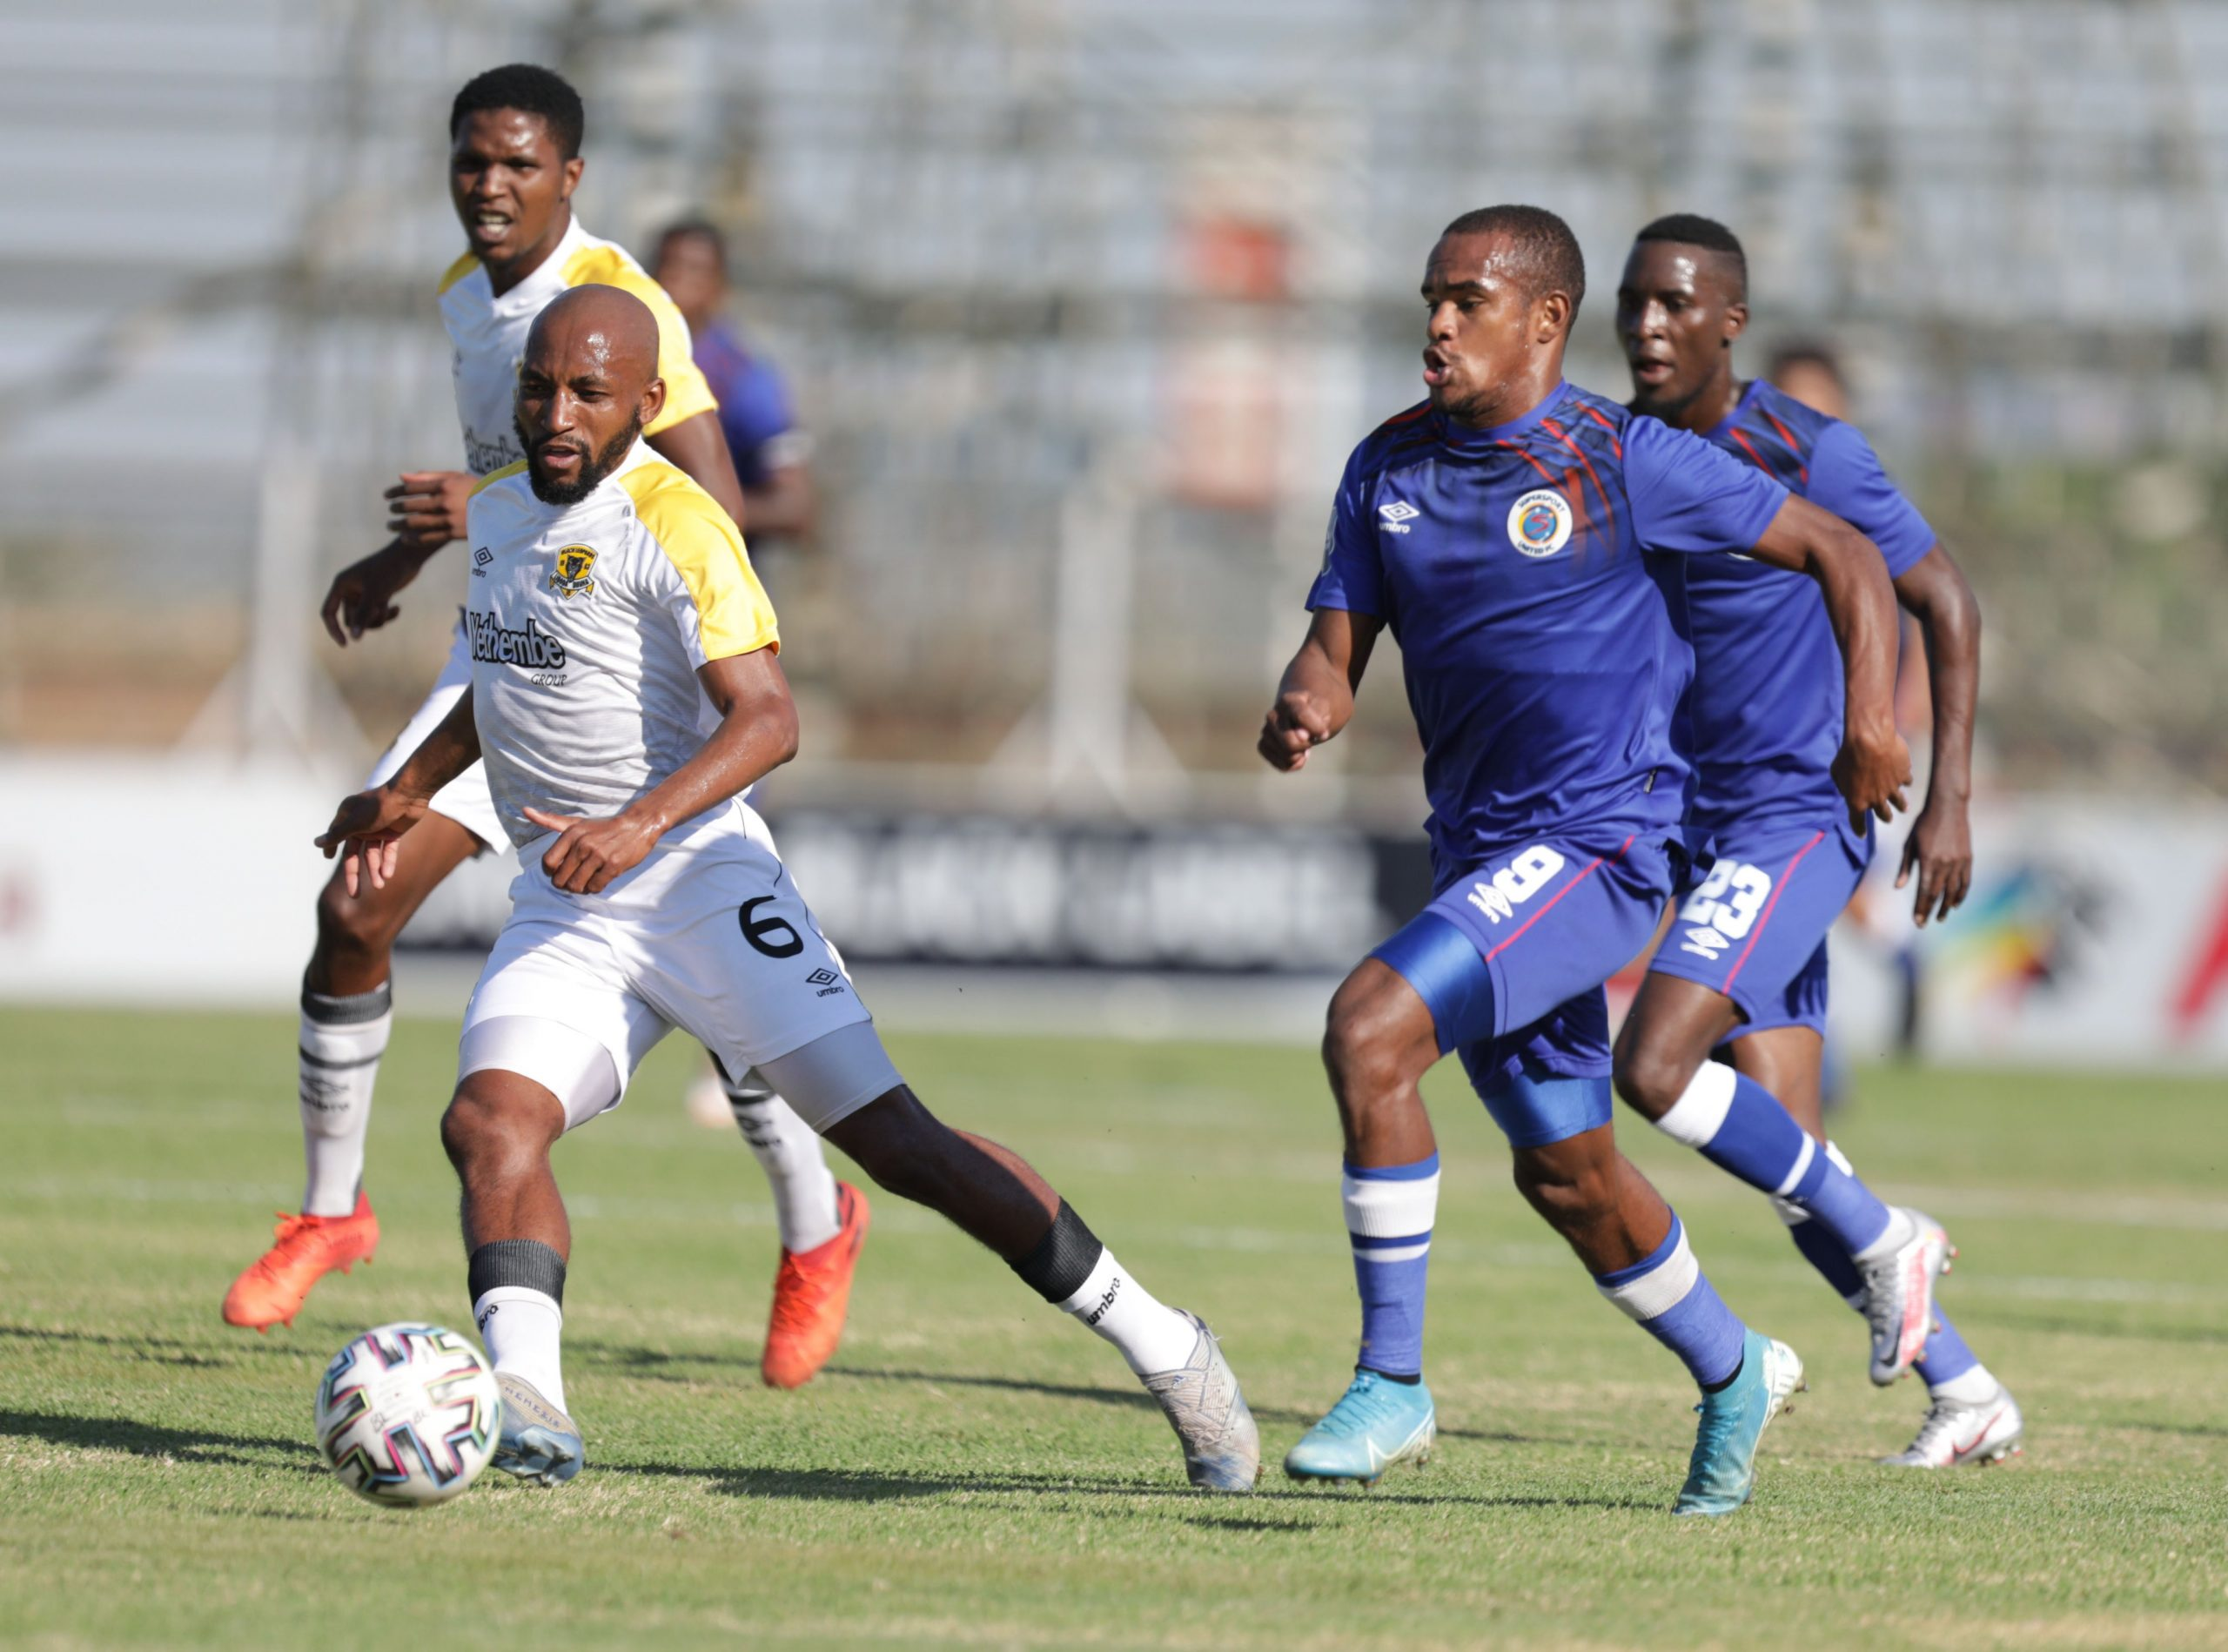 LEOPARDS, SUPERSPORT PLAY TO 1-1 DRAW